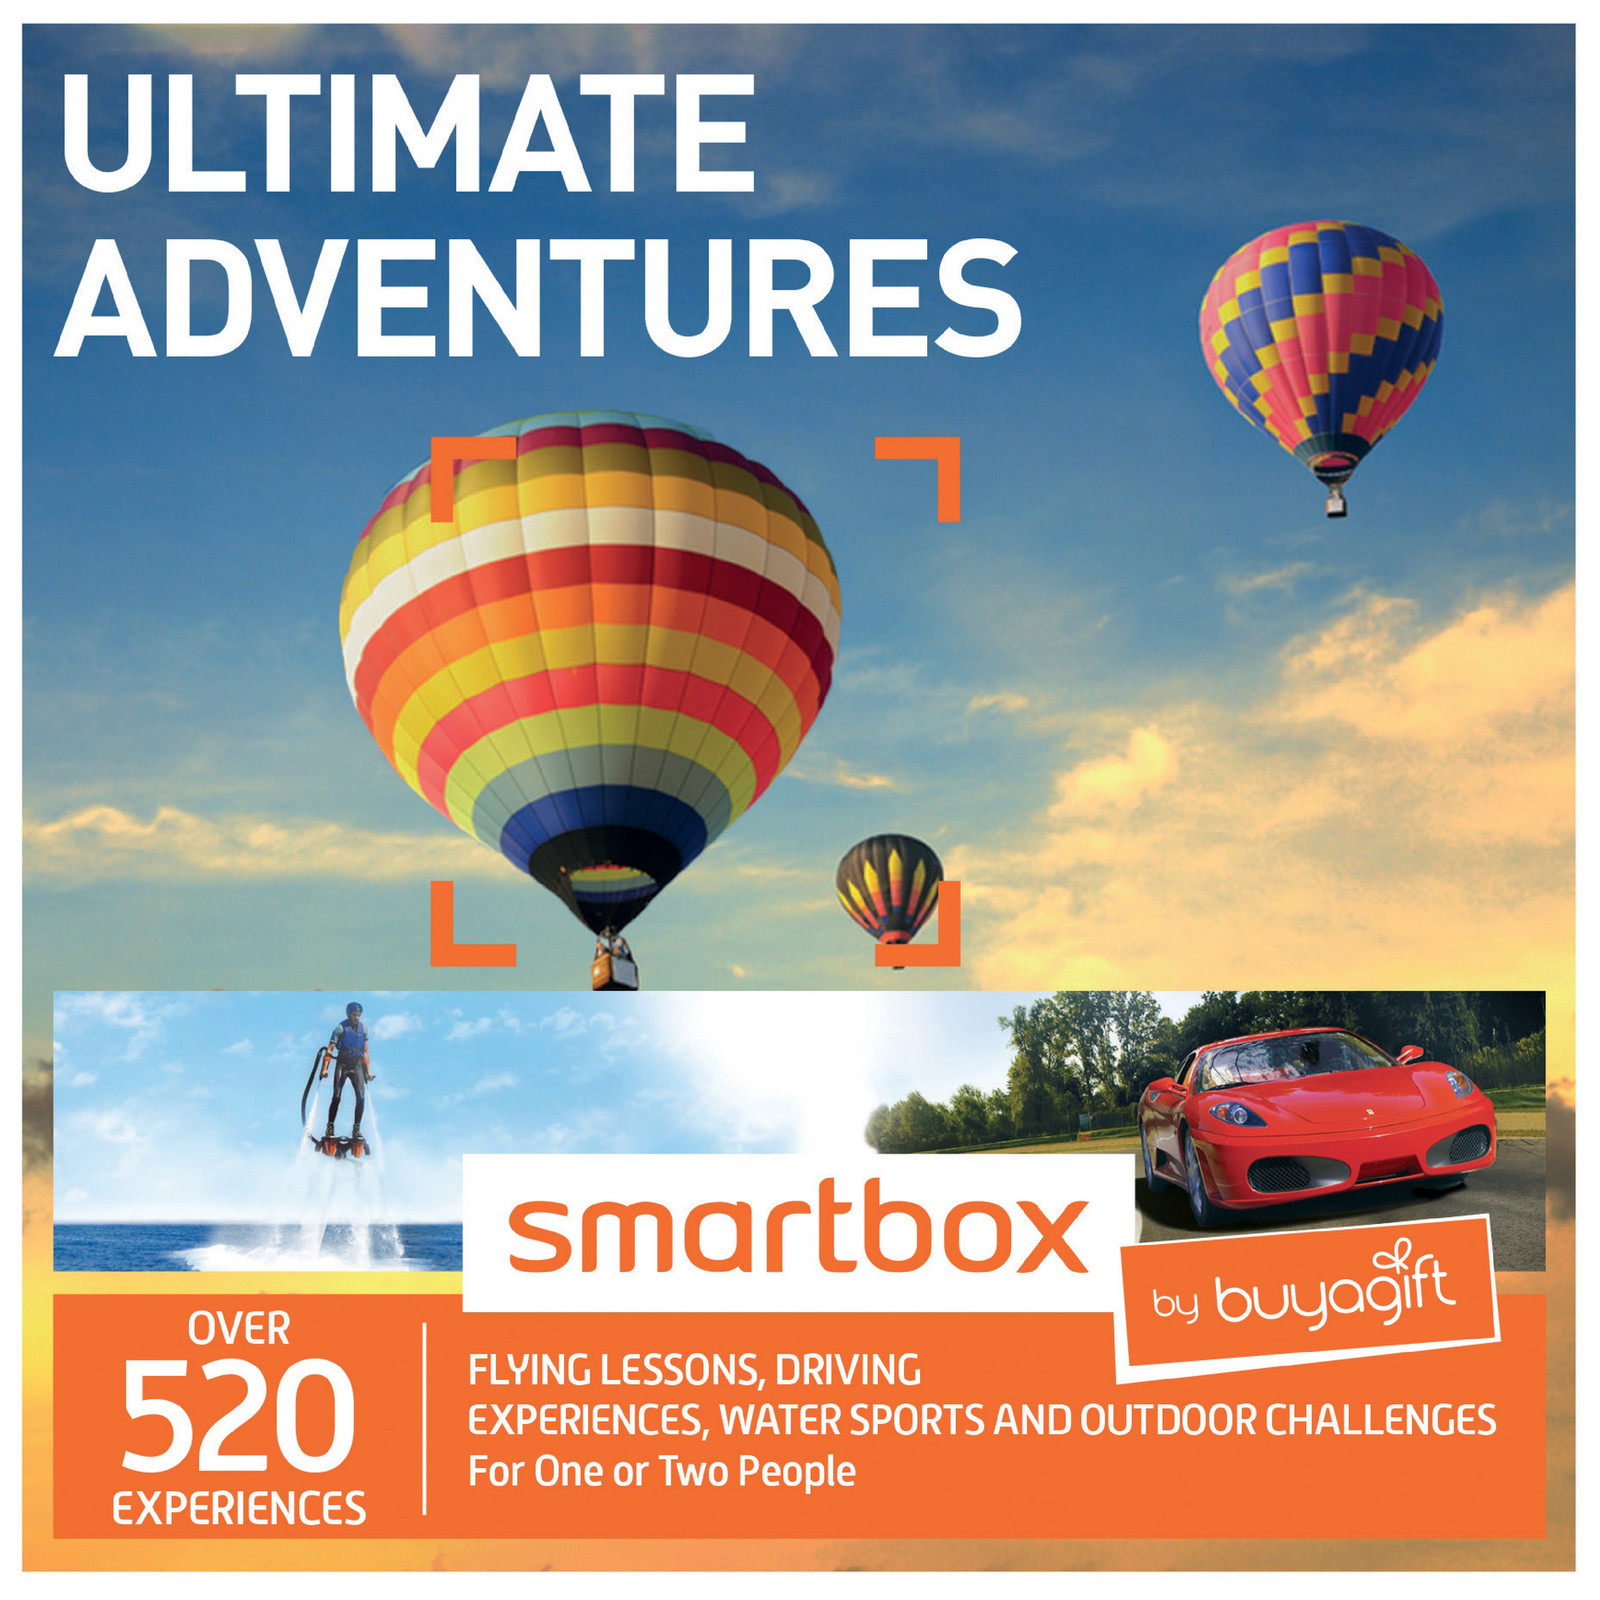 Ultimate Adventures Smartbox BuyaGift